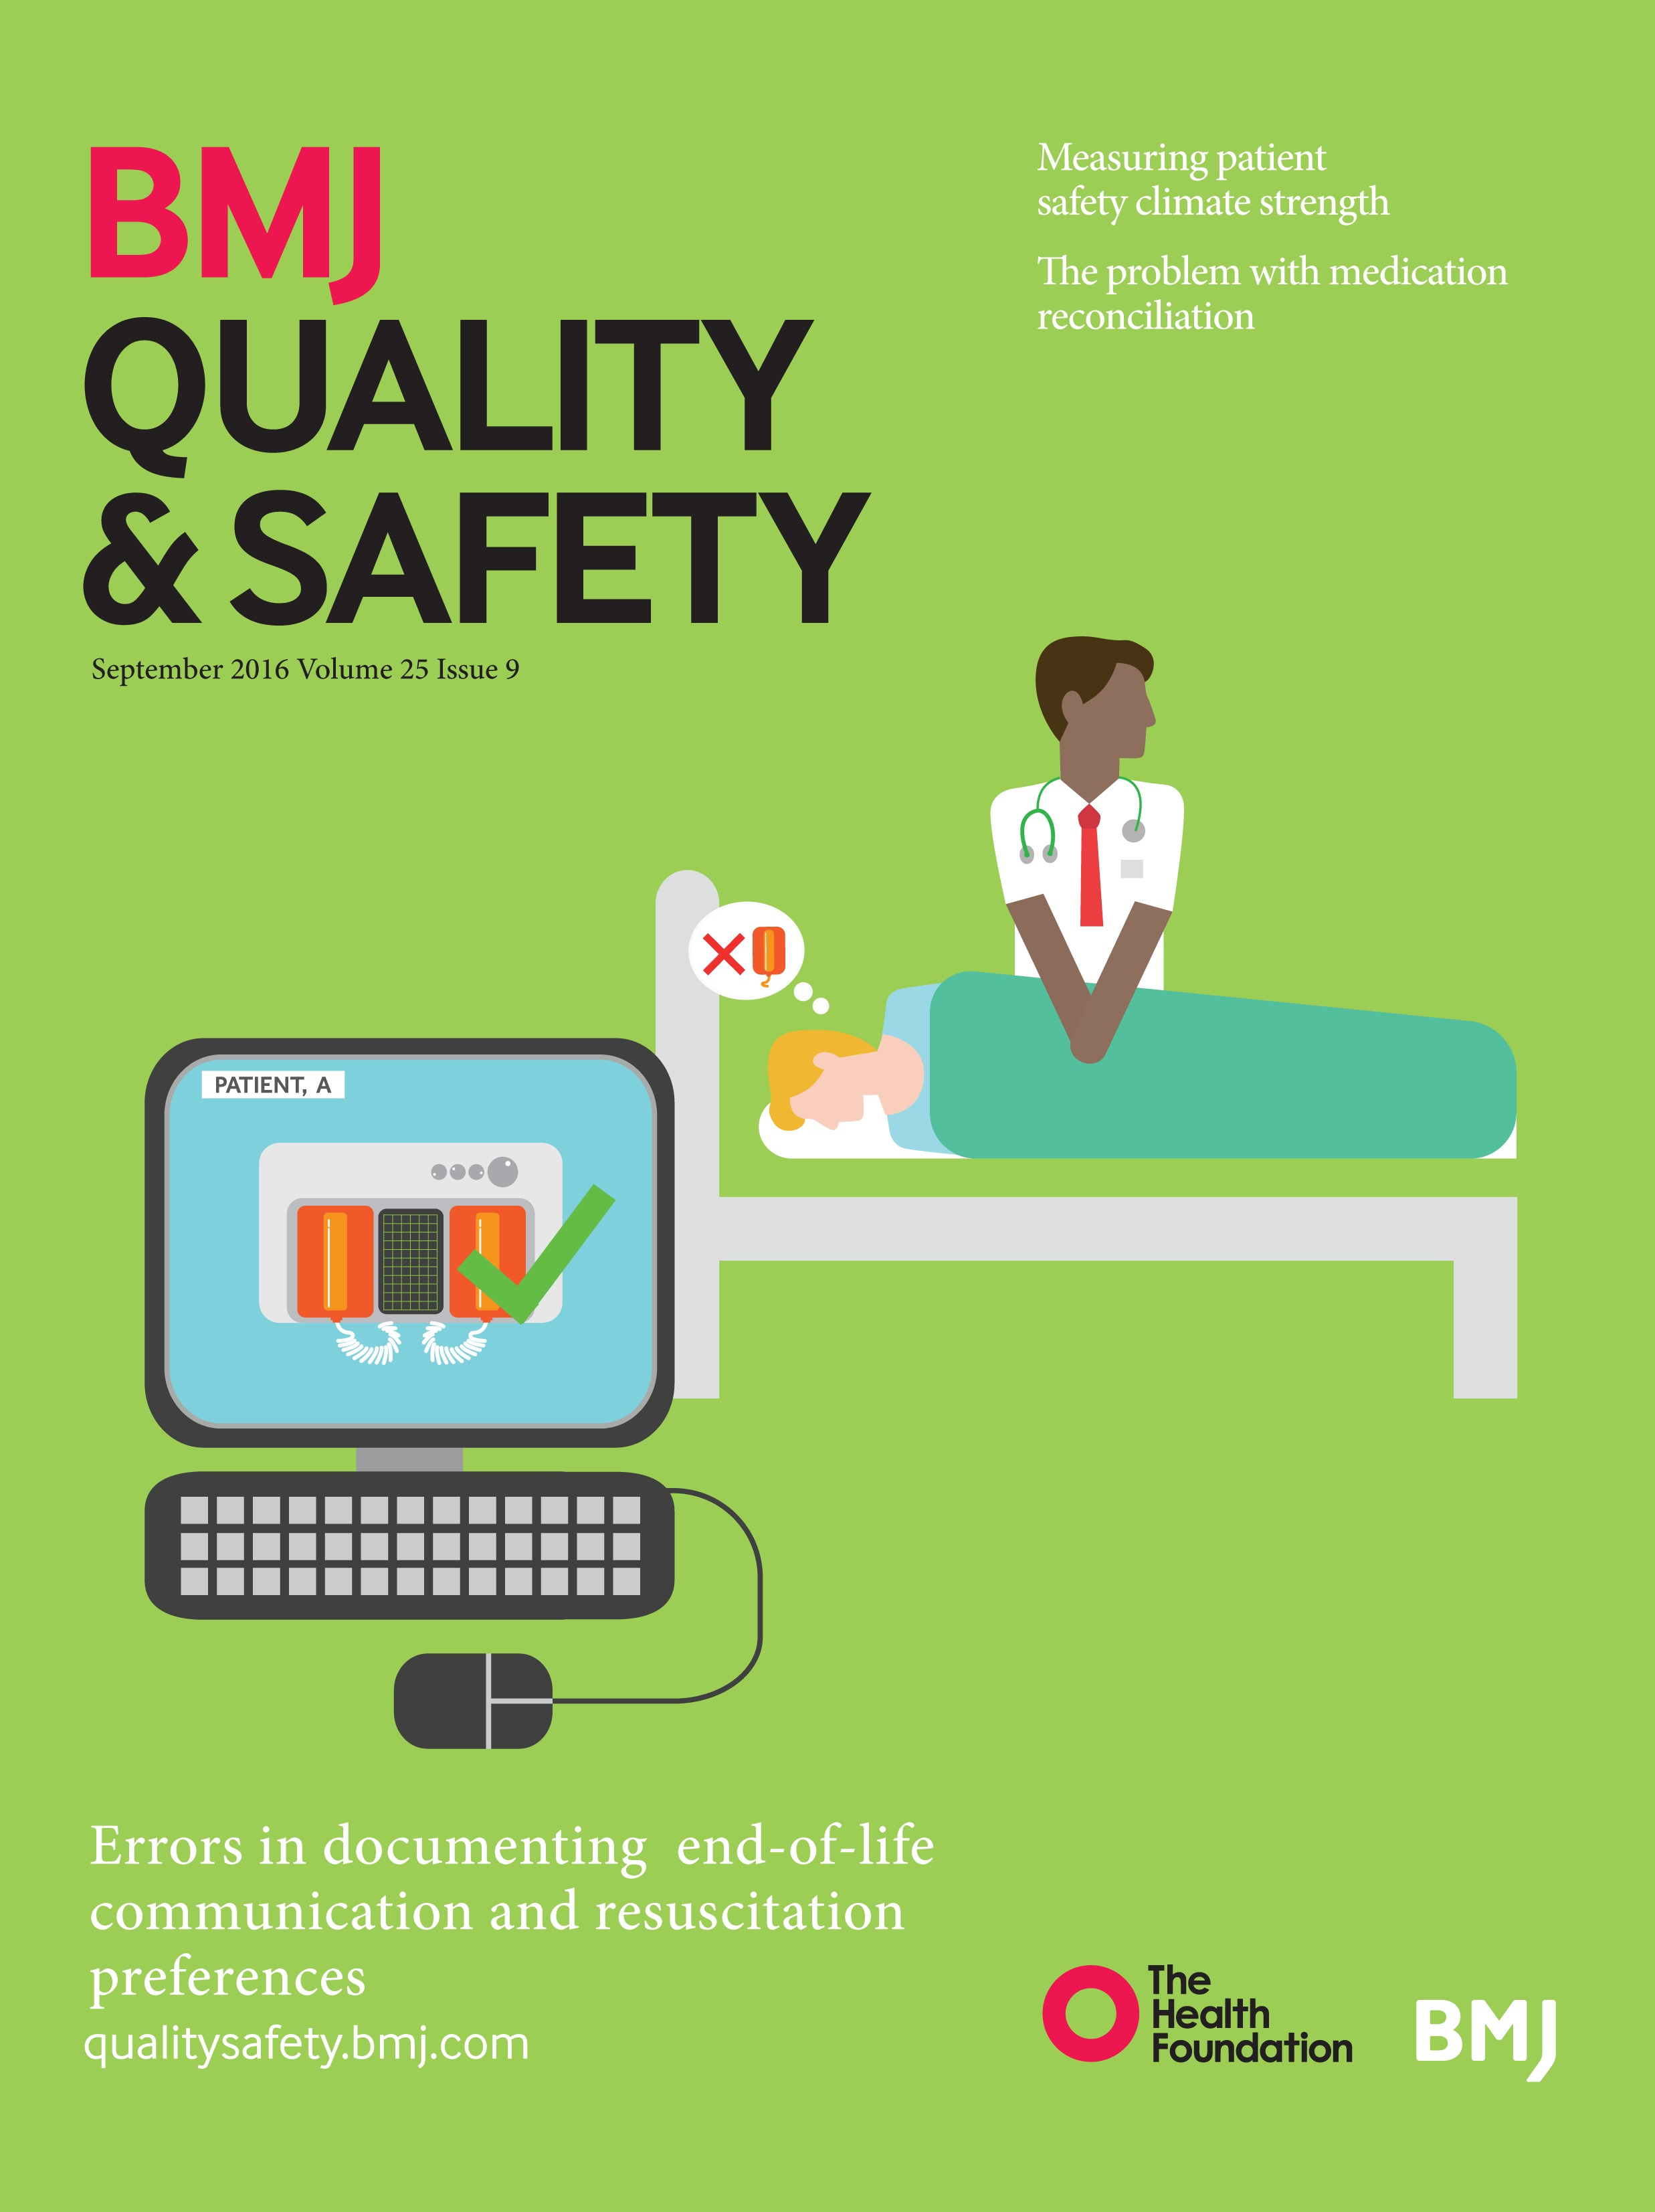 Patient safety climate strength: a concept that requires more attention |  BMJ Quality & Safety